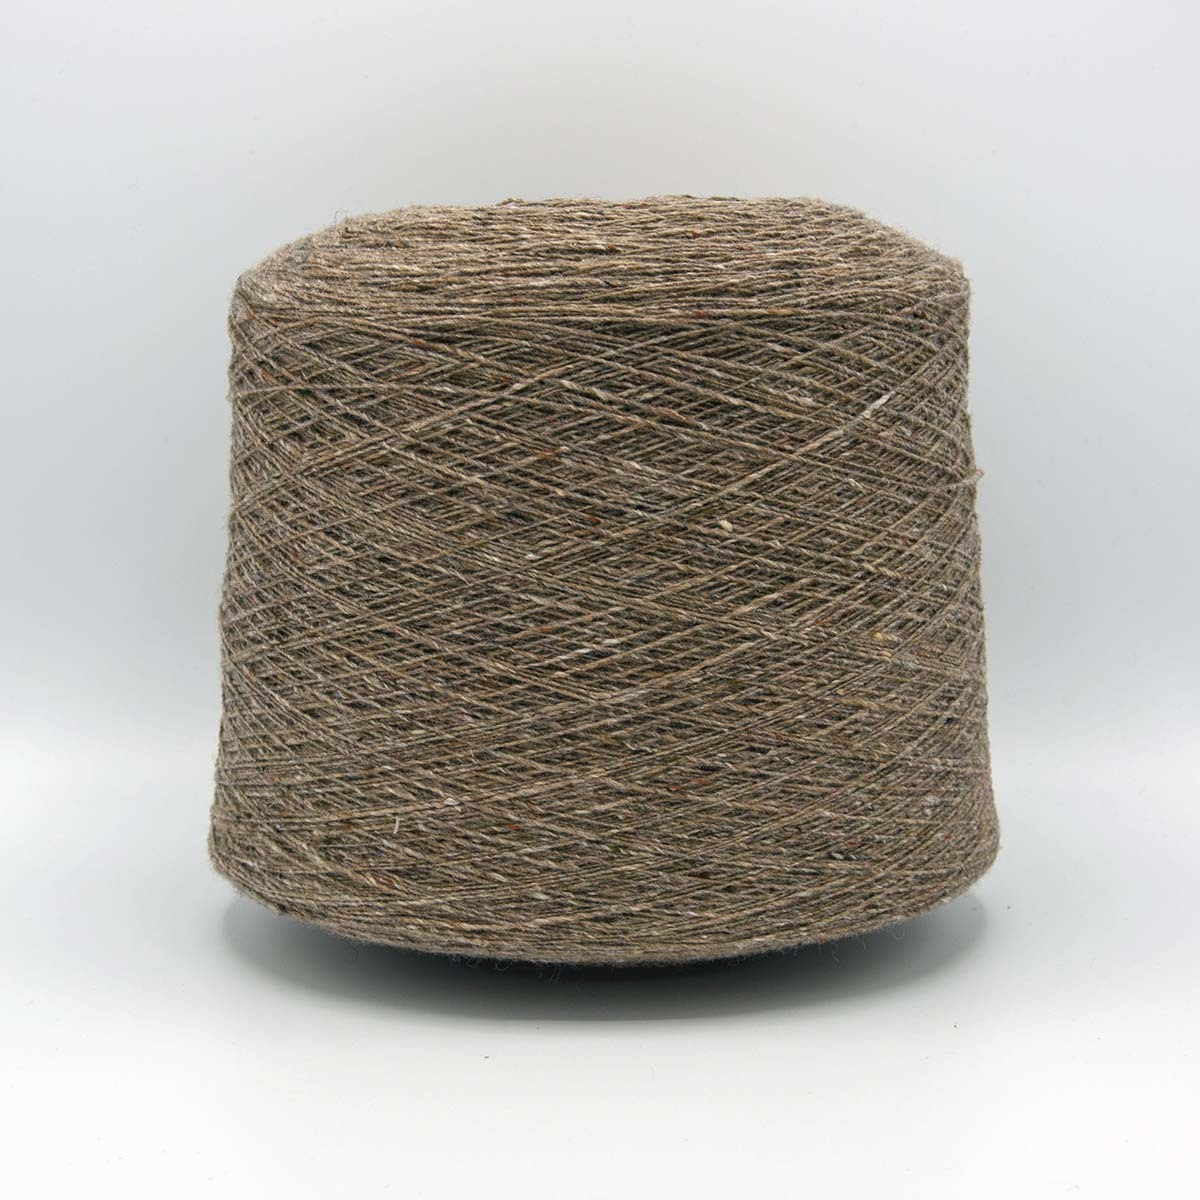 Knoll Yarns Galanta - 1612